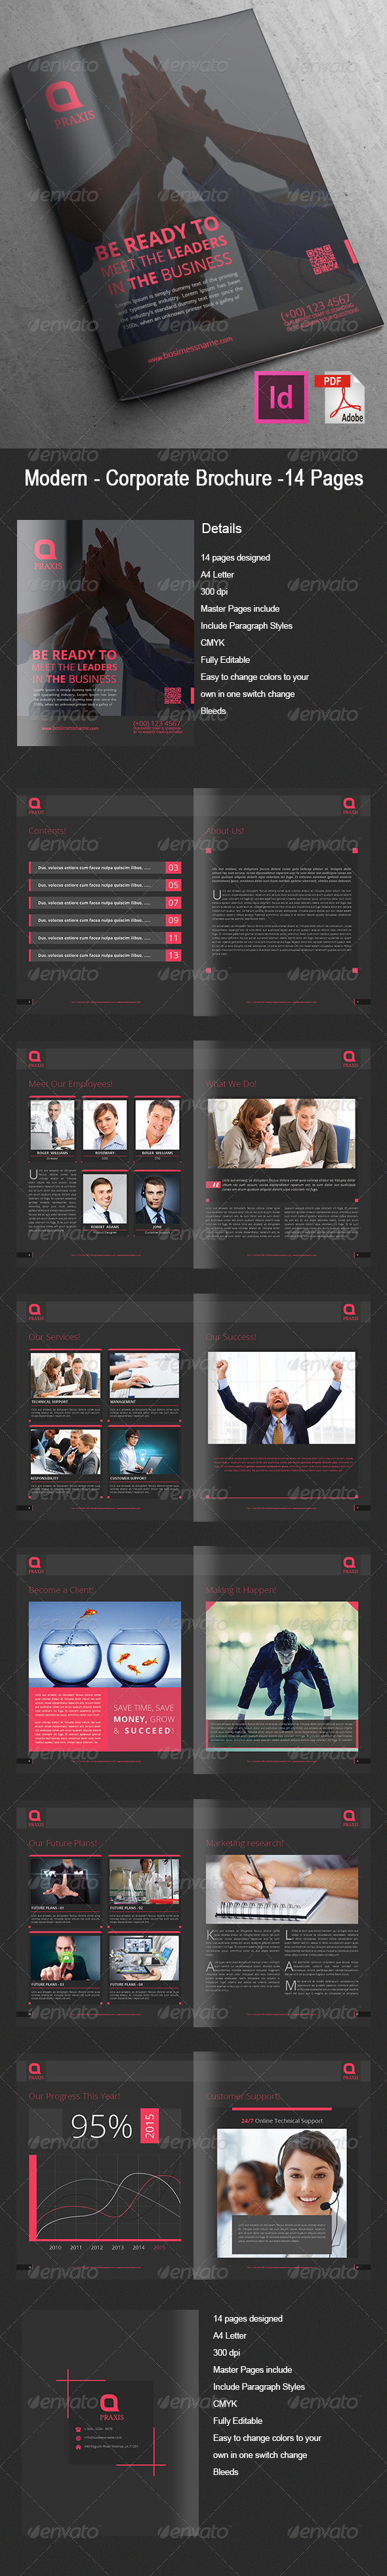 GraphicRiver Modern Corporate Brochure 14 Pages 7965108